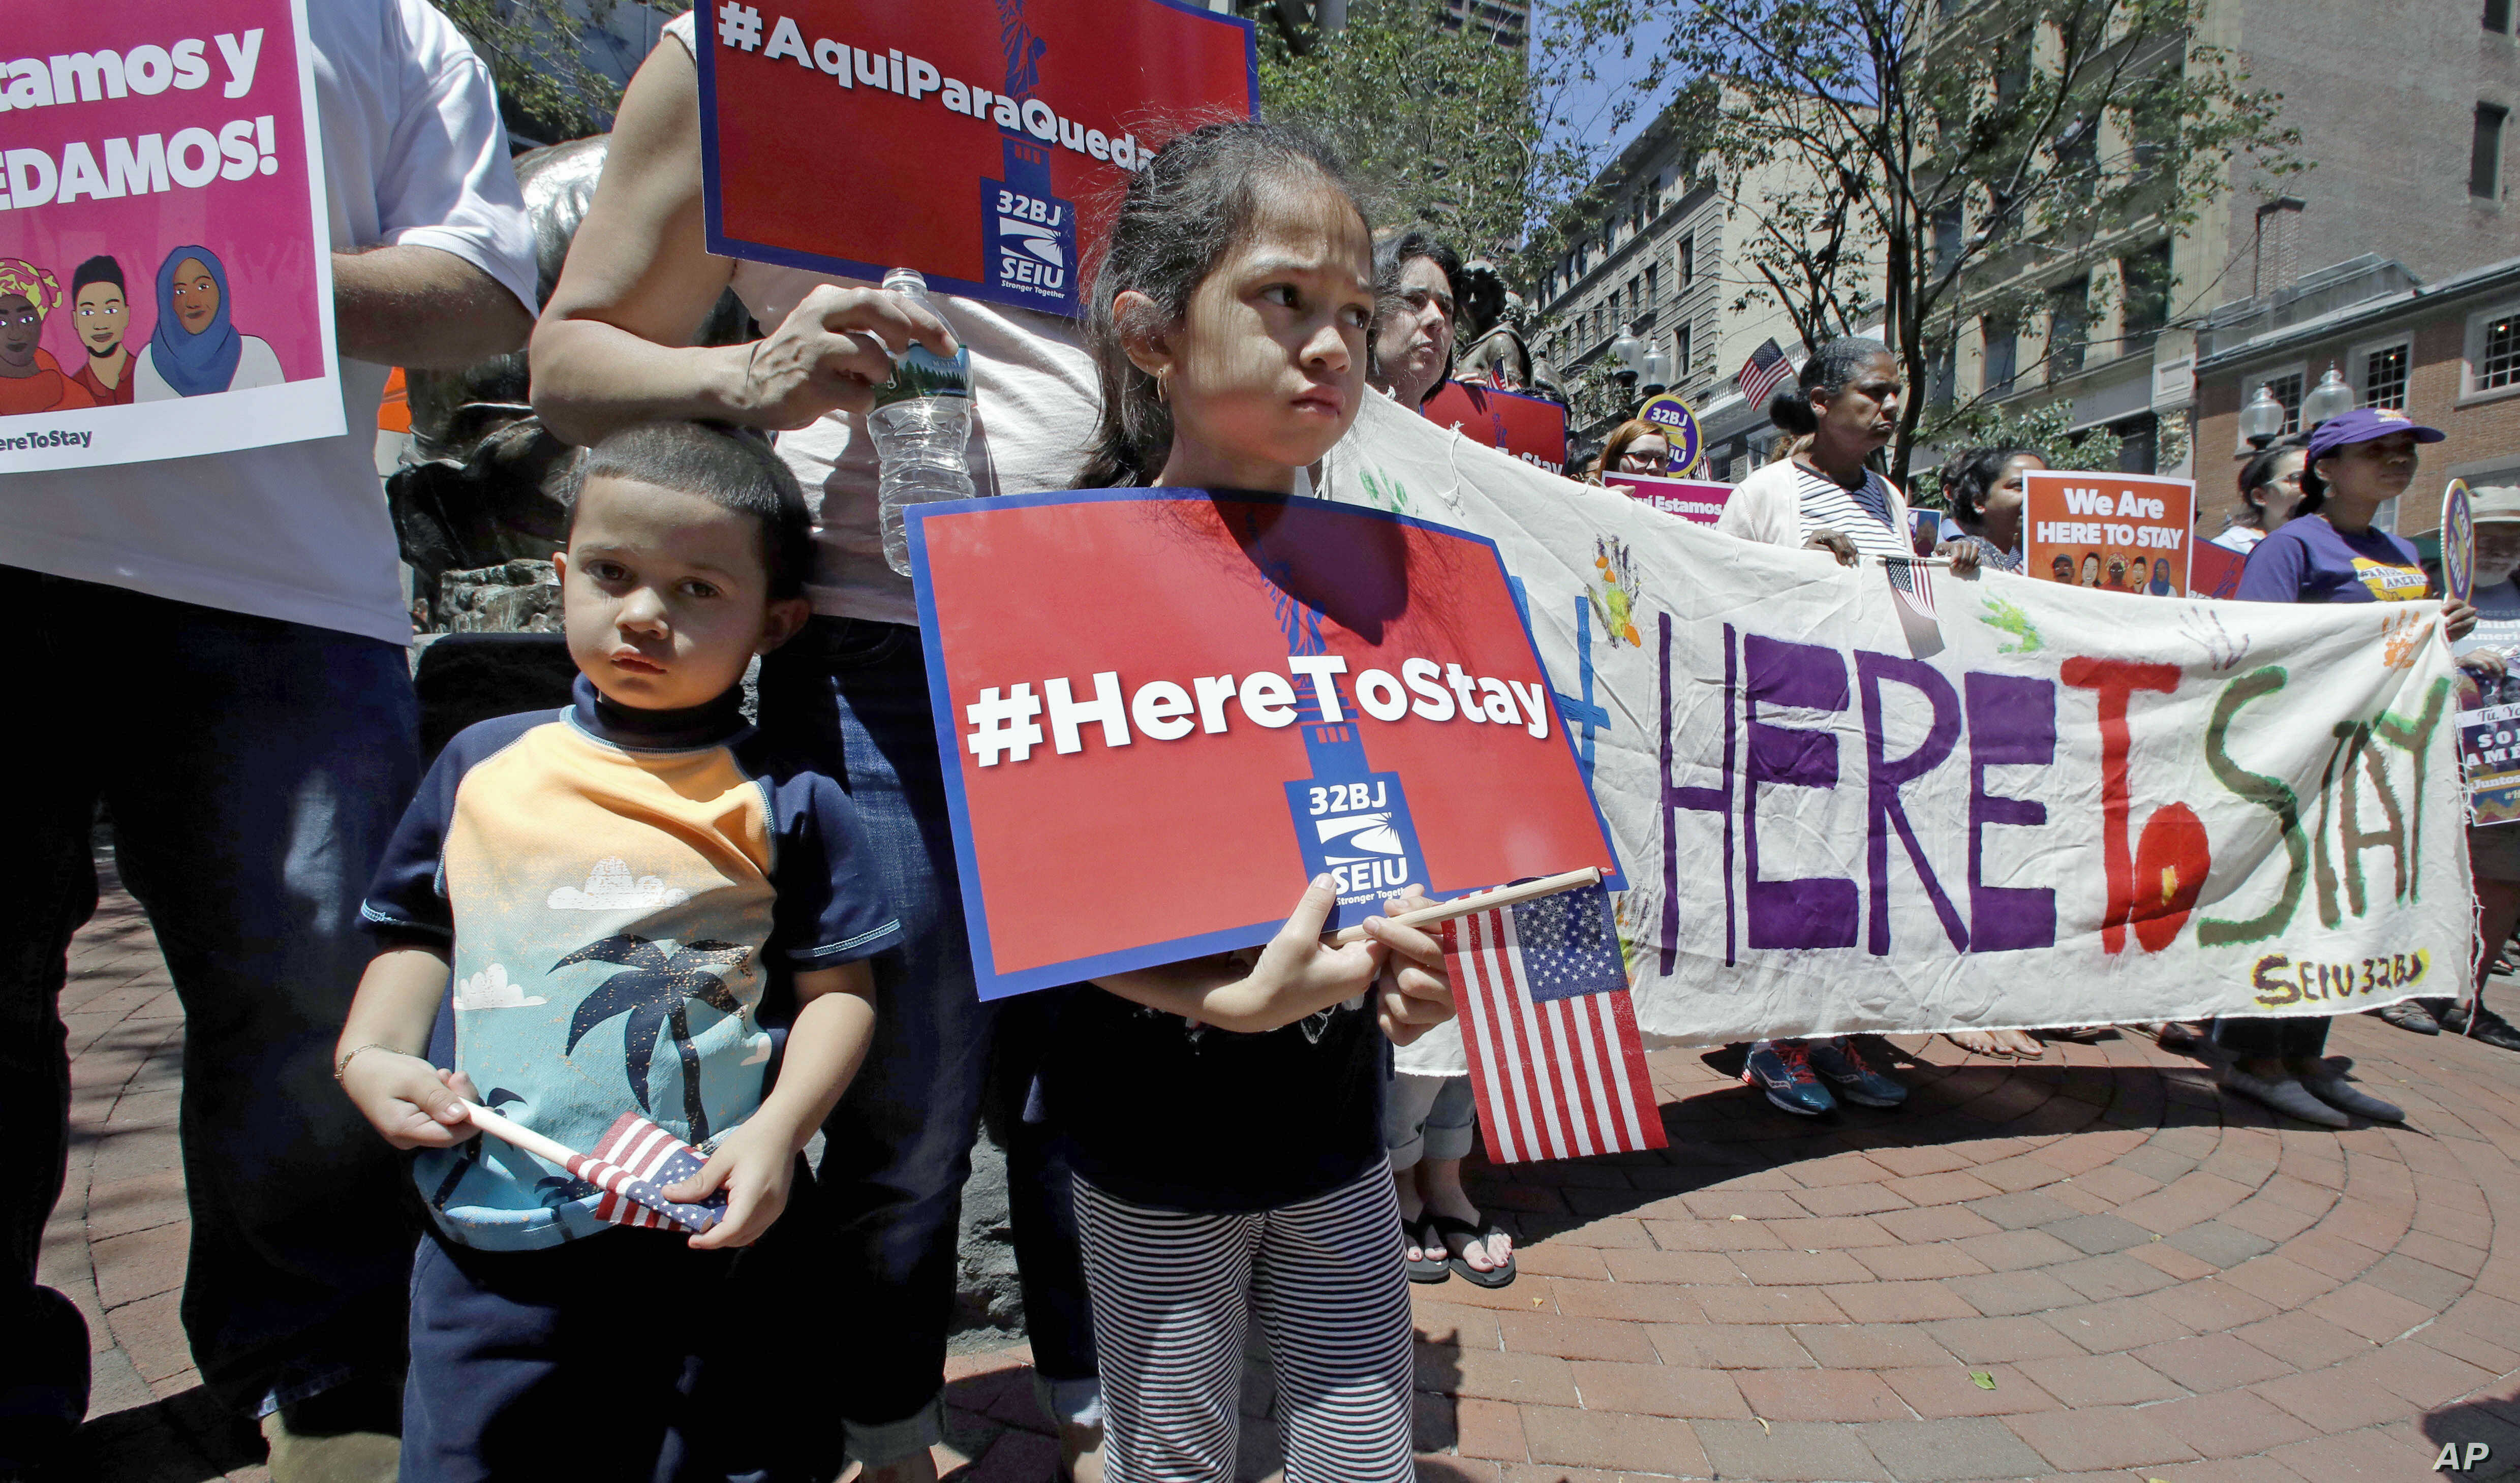 """Nicole Castillo, 7, of East Boston, holds a sign while standing with her brother Diego, 4, and mother Elsa, who is originally from El Salvador, during a """"Here to Stay"""" rally at the Irish Famine Memorial in Boston, July 6, 2017."""